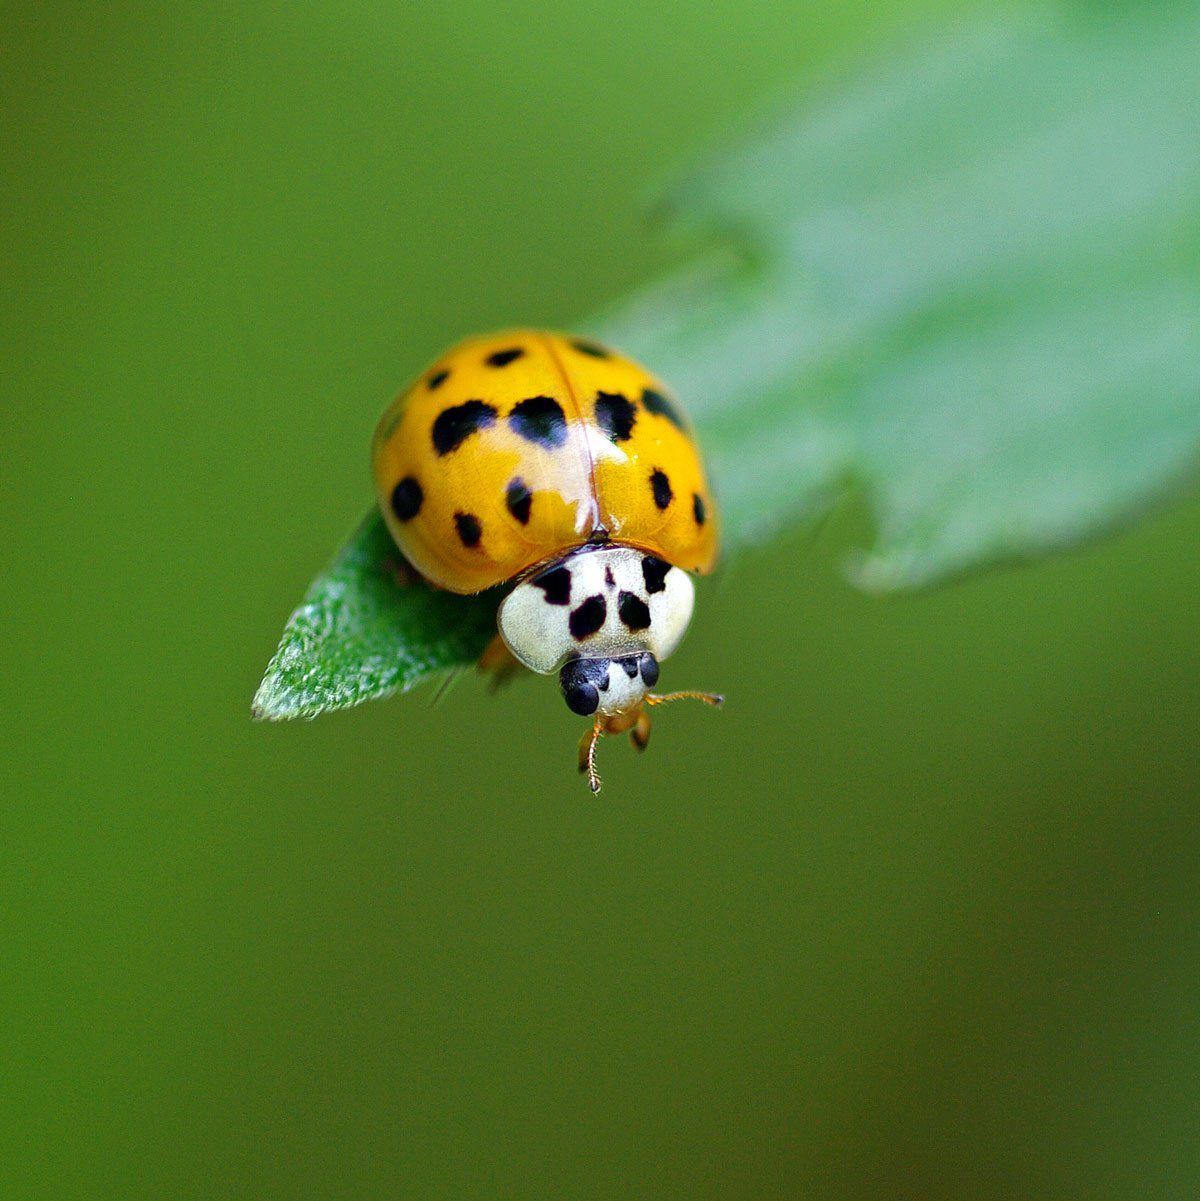 Asian ladybug sits on a green leaf